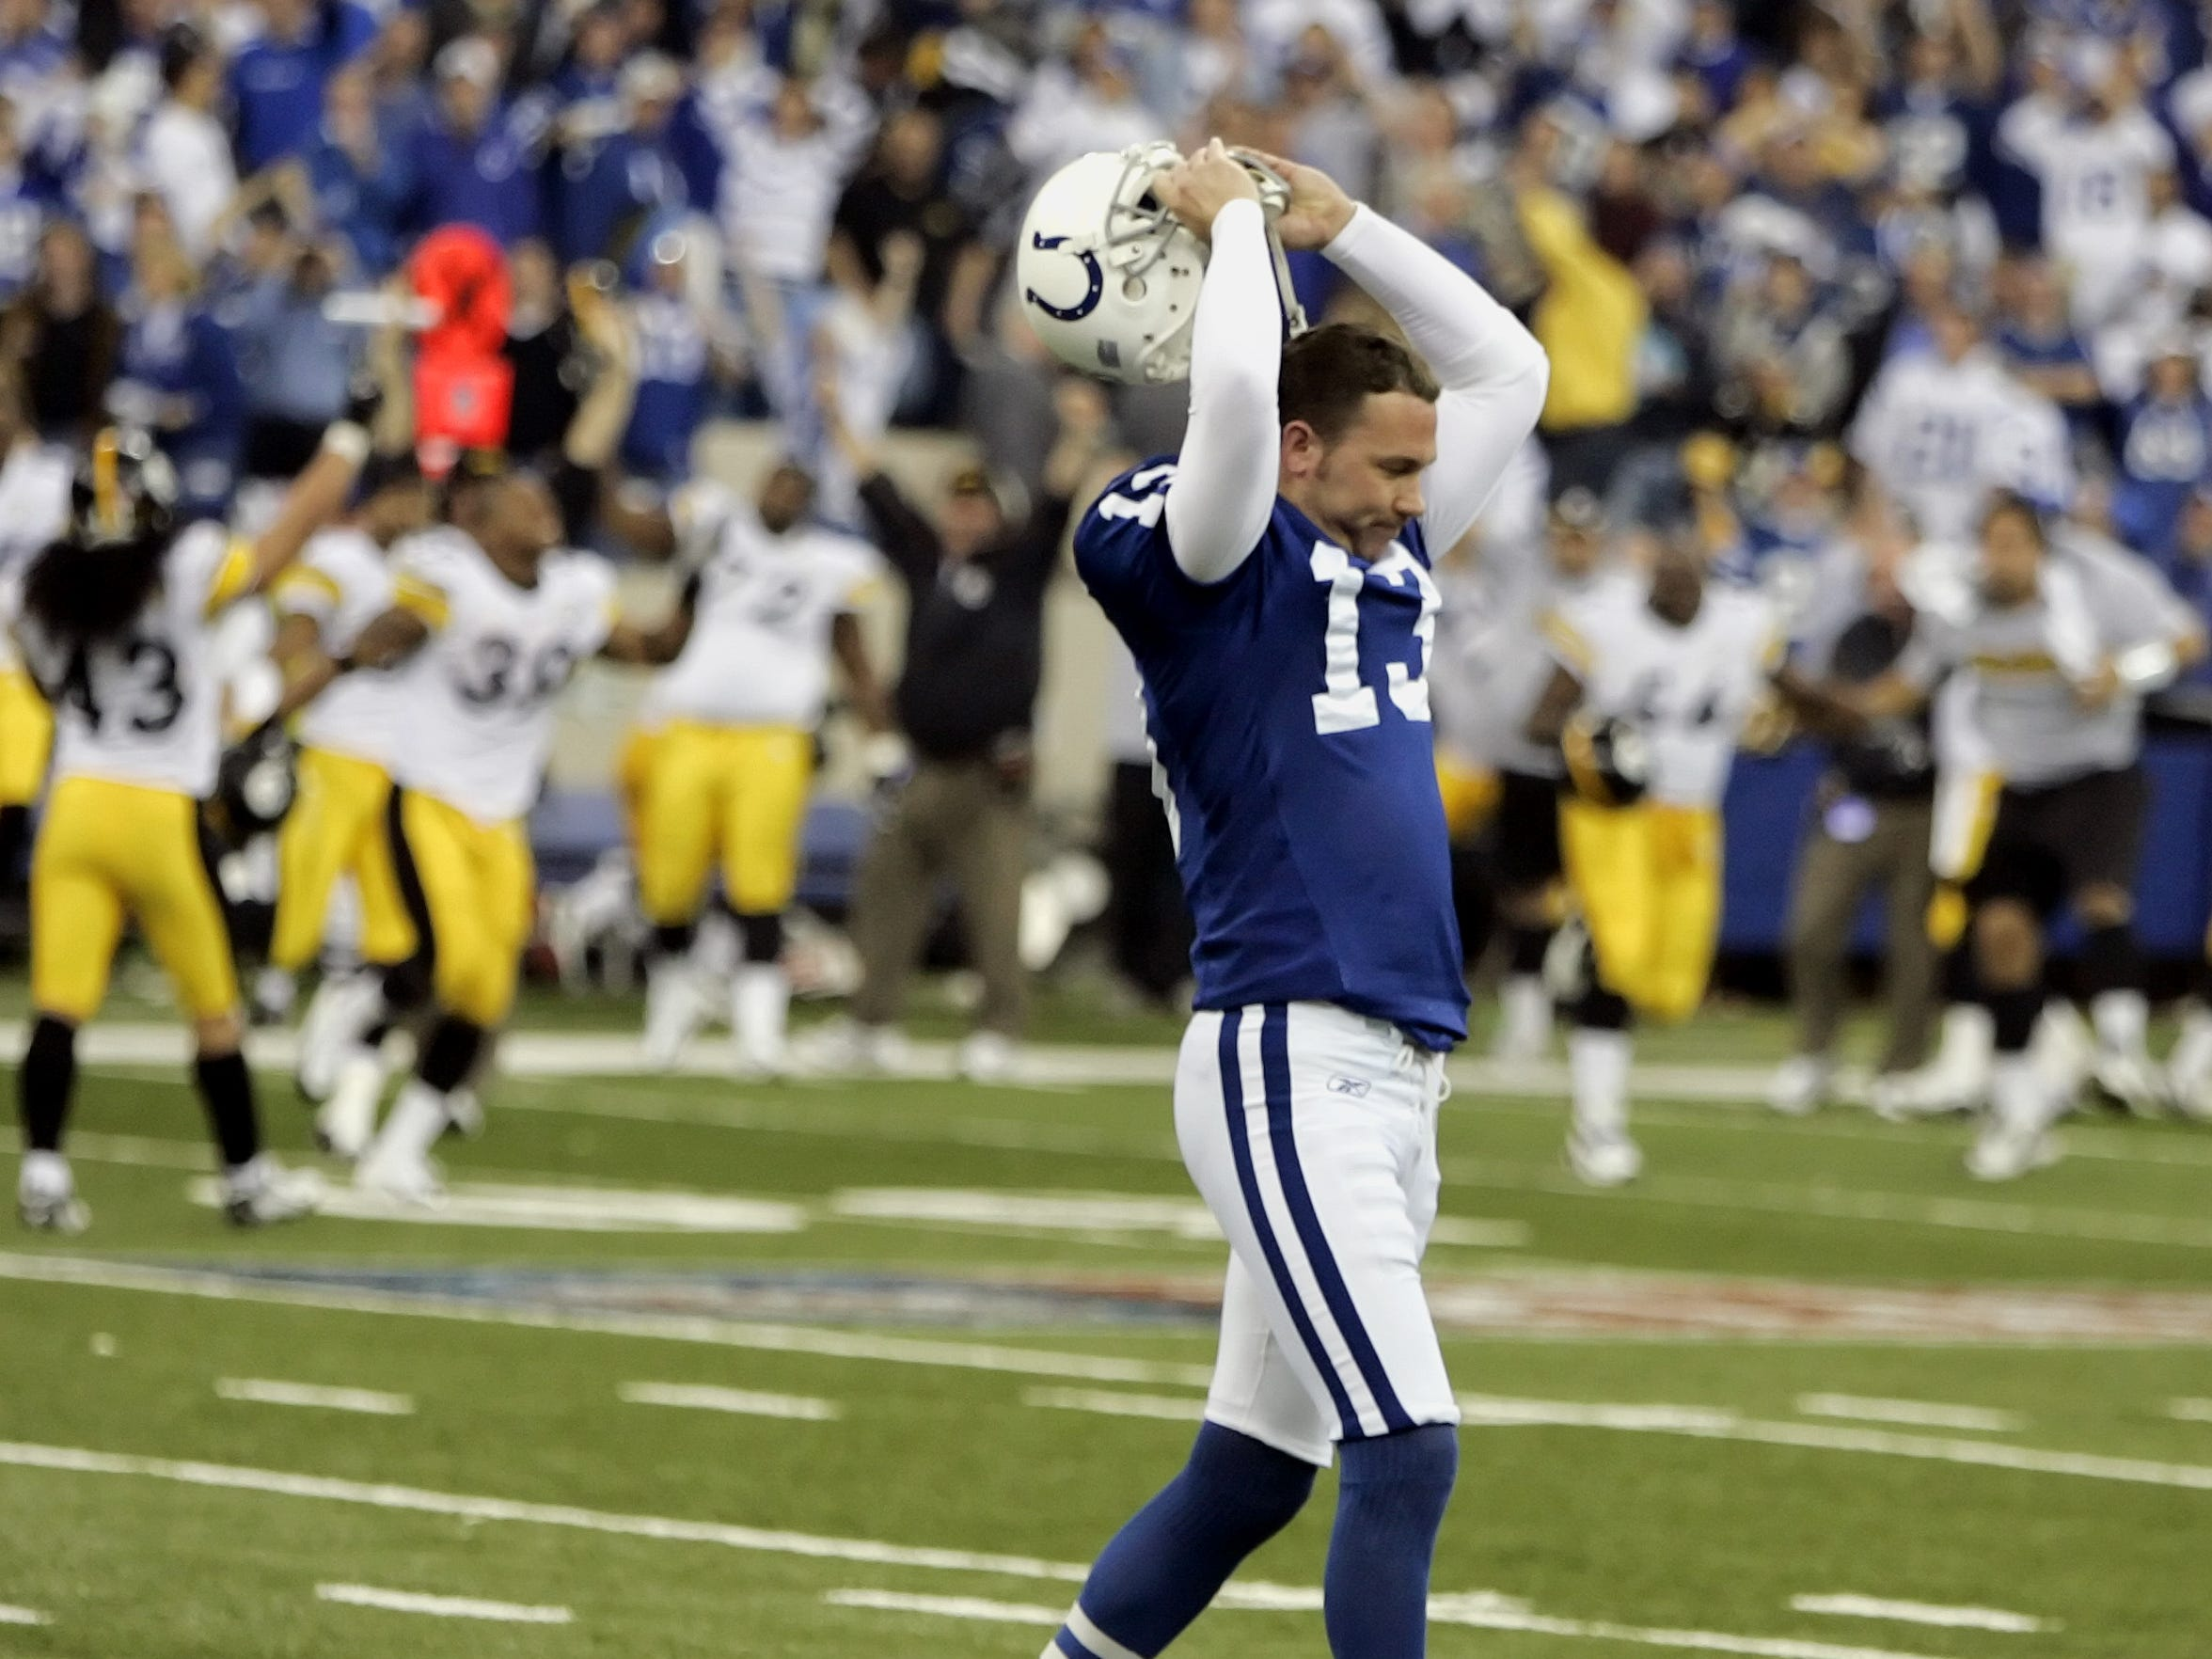 """""""He overcooked it,"""" Bill Polian says of Mike Vanderjagt's missed 46-yard field goal attempt in the waning moments. It'd be Vanderjagt's last as a Colt."""